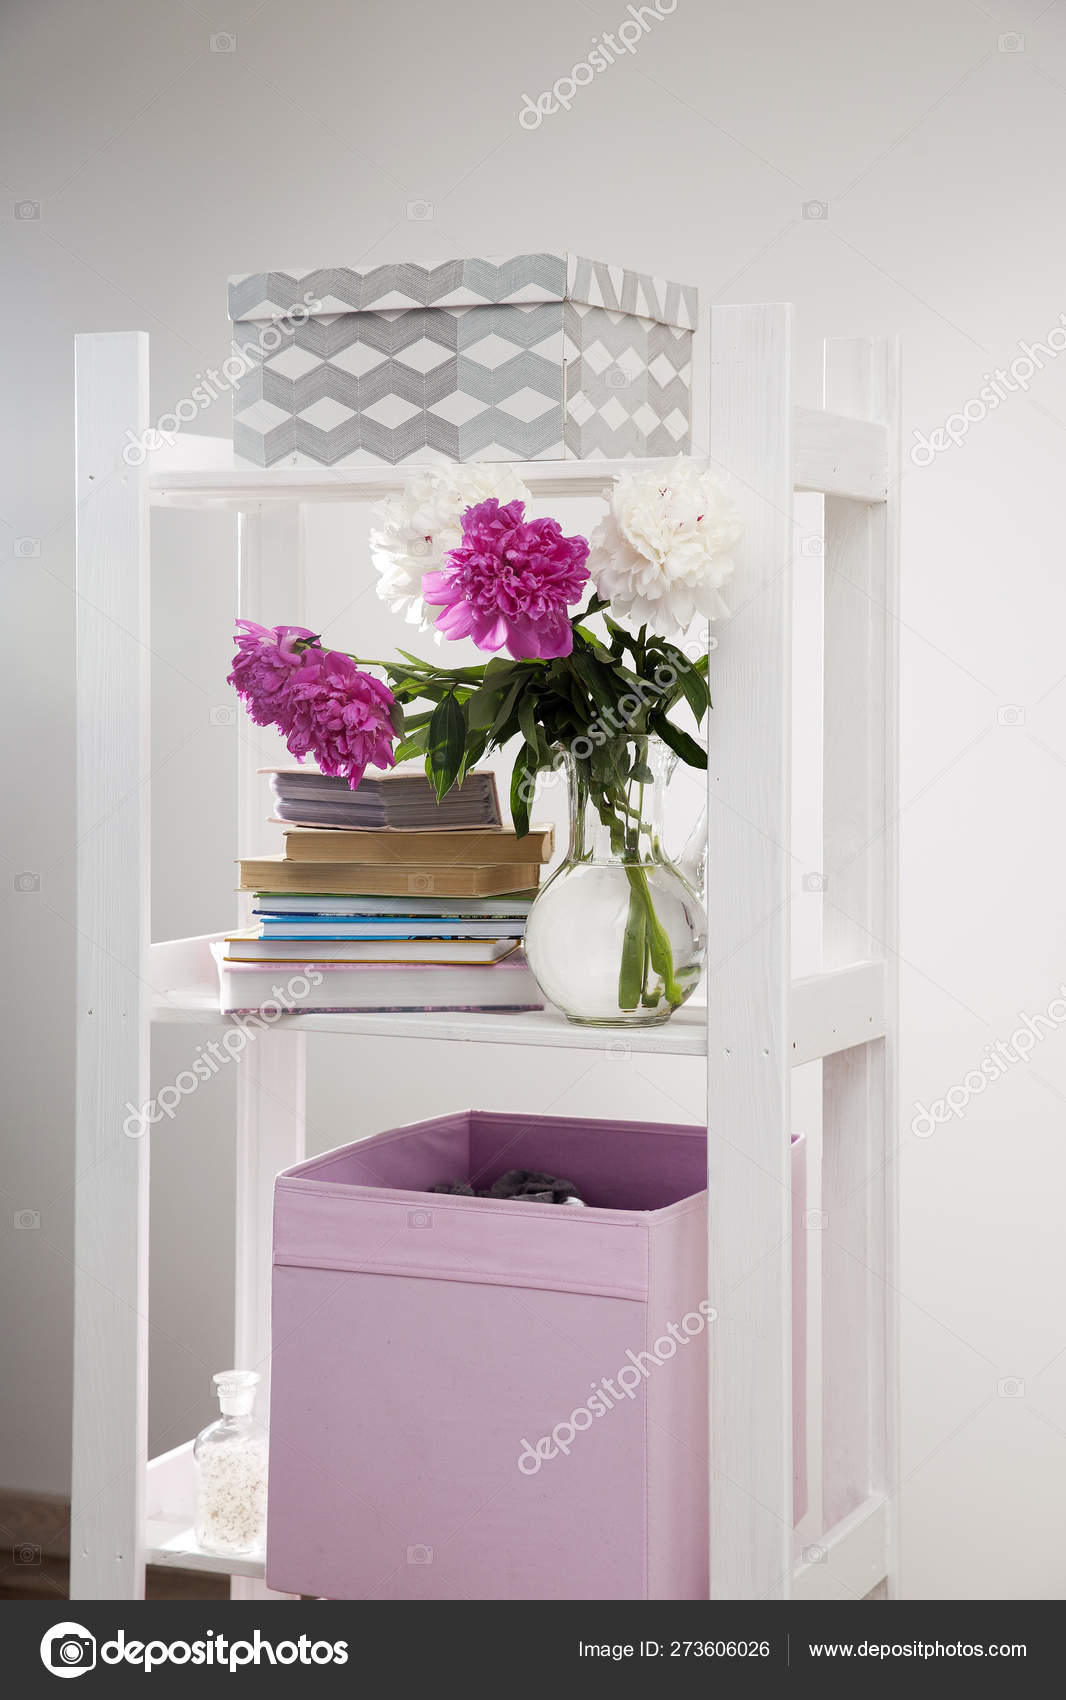 Fragment Of Bright Children S Room With A White Bookcase And